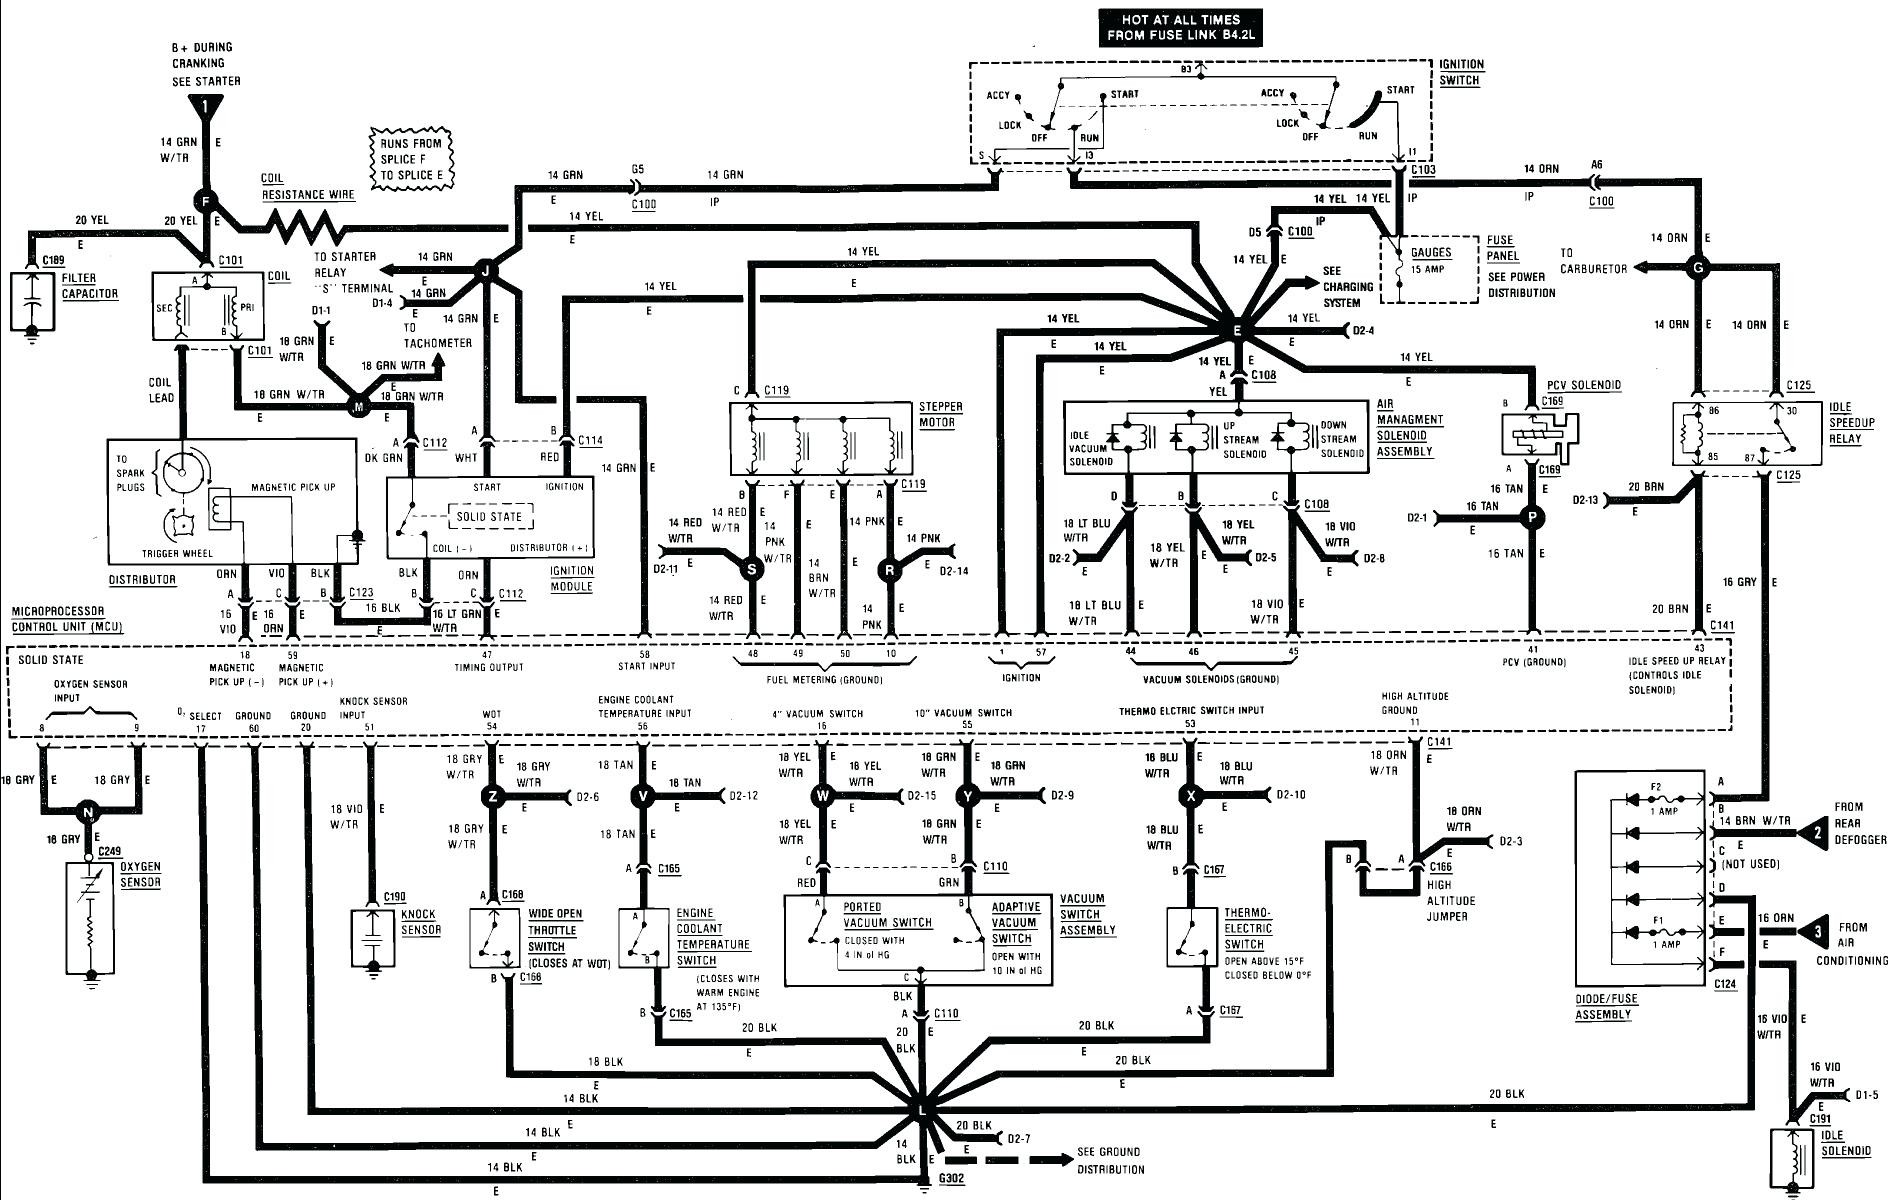 [ZSVE_7041]  DIAGRAM] 1987 Jeep Yj Wiring Diagram FULL Version HD Quality Wiring Diagram  - JOBVACANCYSITES.SALADBOWL.FR | 2004 Jeep Wrangler Wiring Schematic |  | Wiring Diagram BOX